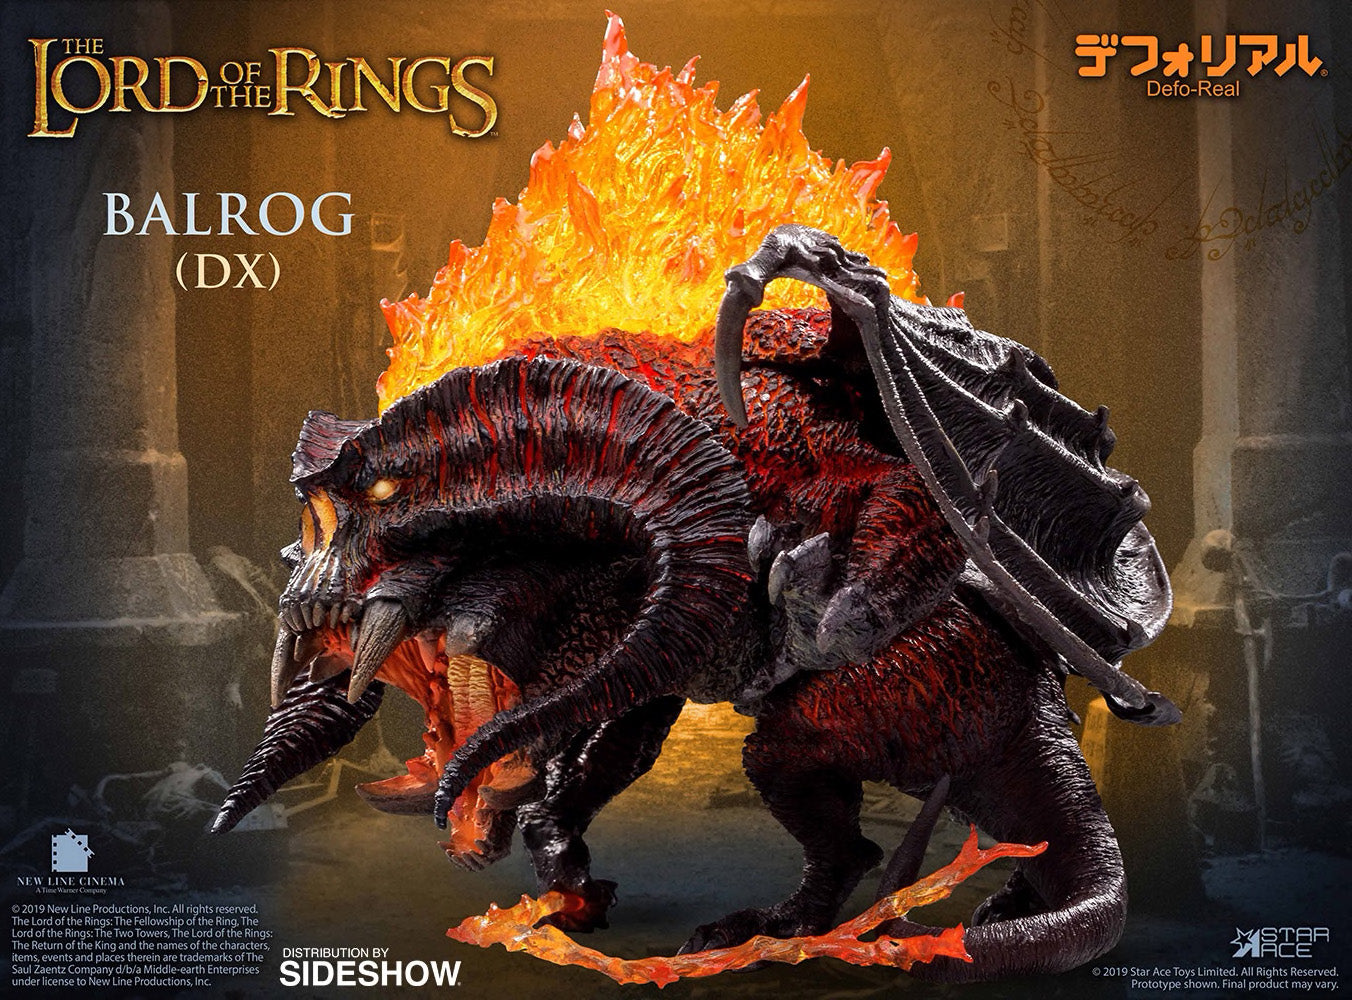 Star Ace Toys - Defo-Real - The Lord of the Rings - Balrog with Gandalf (DX)